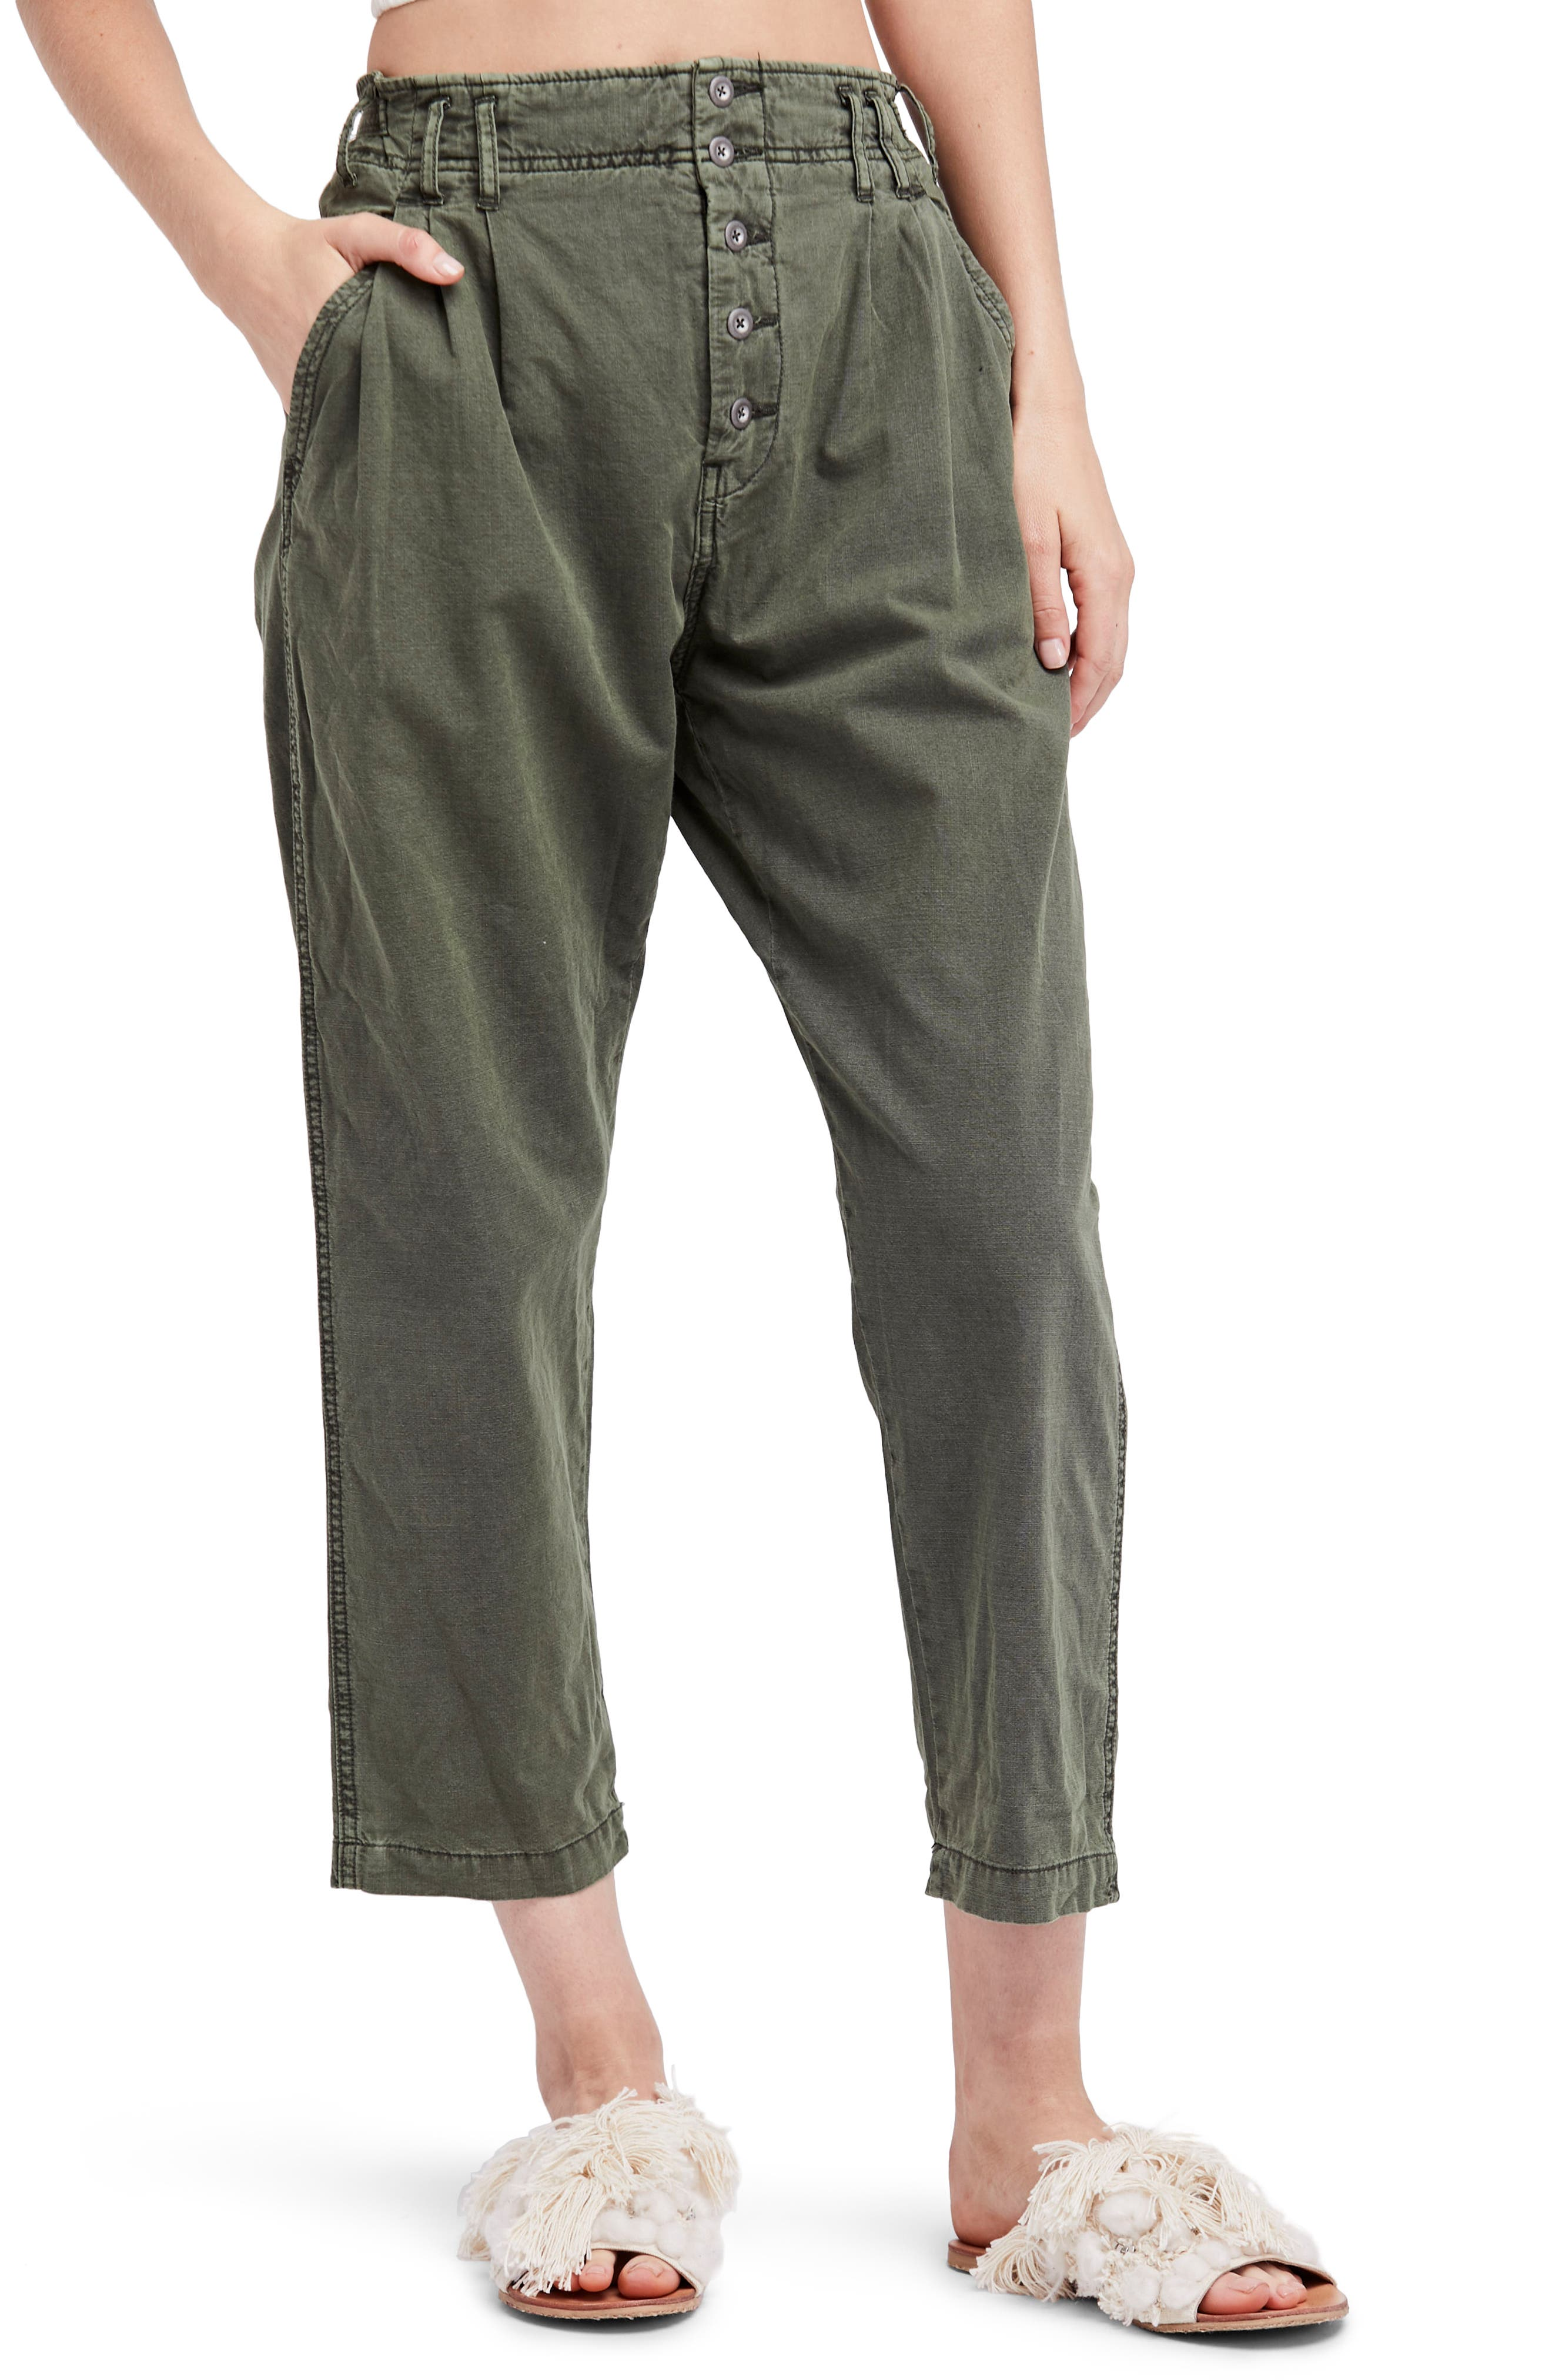 Compass Star Trousers,                         Main,                         color, Slate